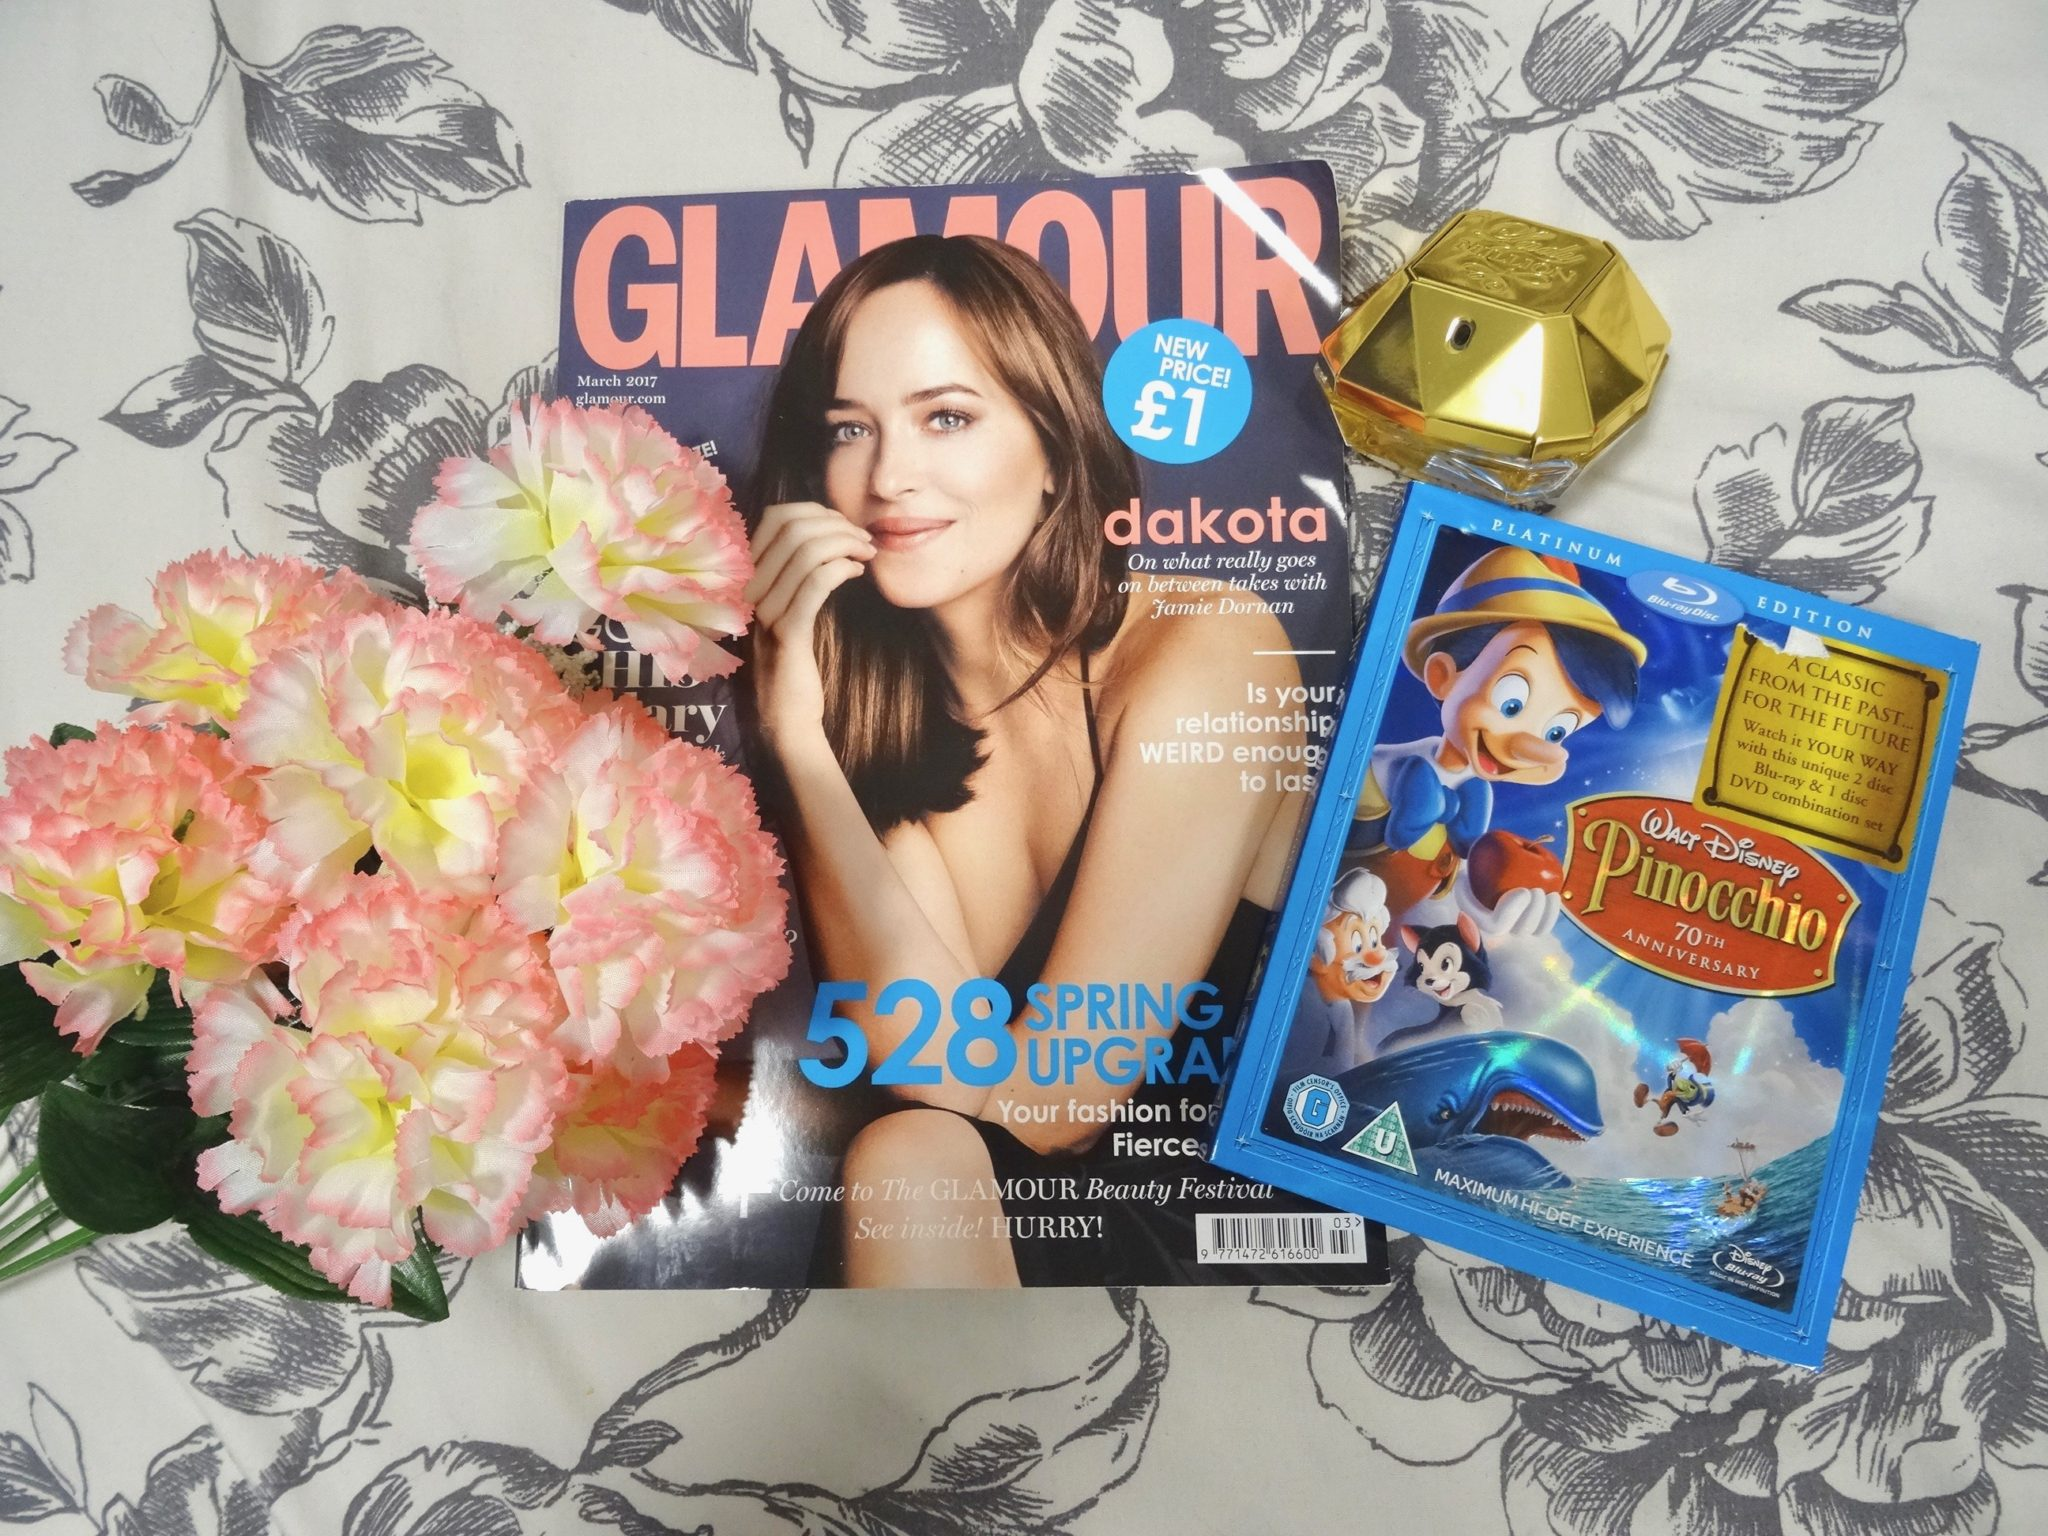 Monthly Favourites - Glamour Magazine - Disney's Pinocchio - Paco Robanne Lady Million